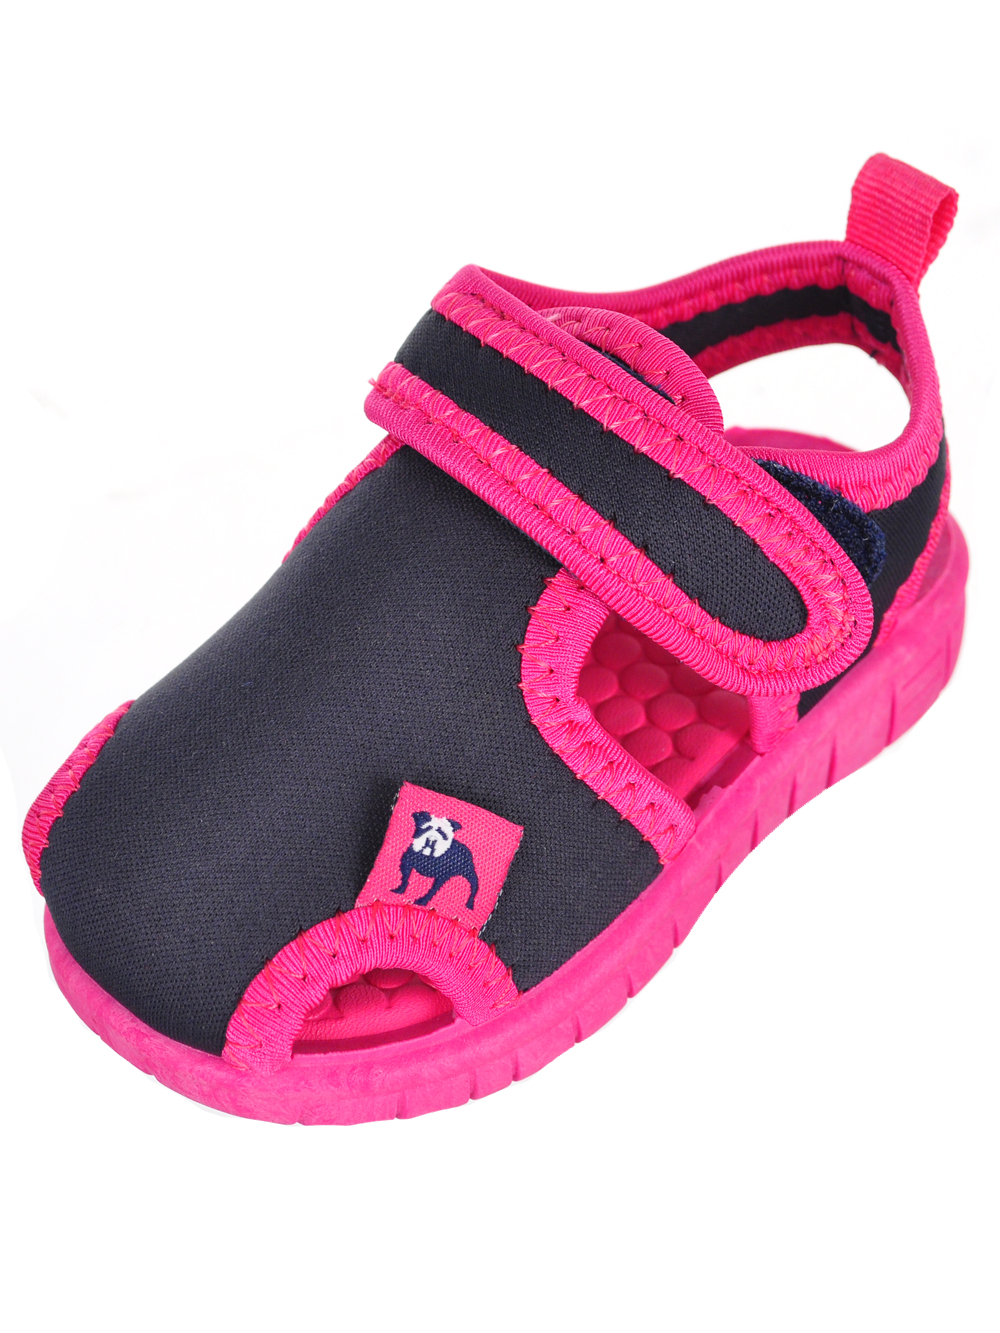 e552f16bf783 Size 3 Toddler Water Shoes - Style Guru  Fashion